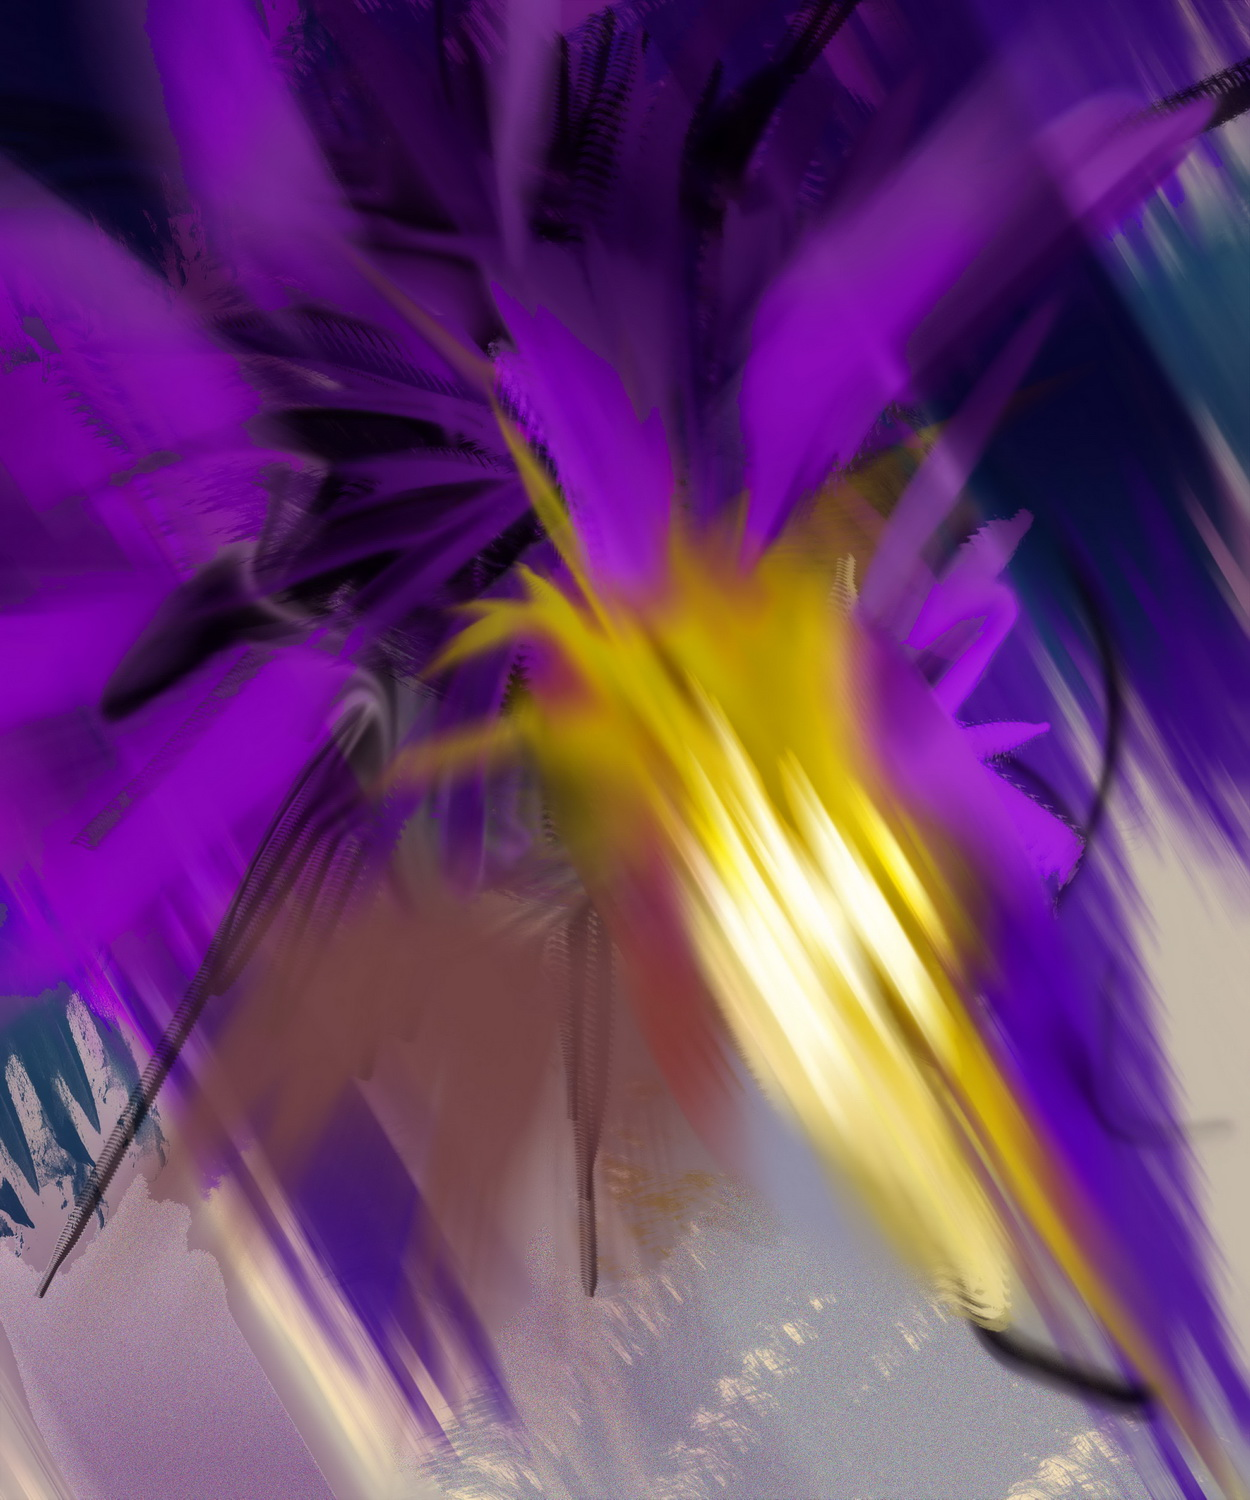 abstraction_20100815_01